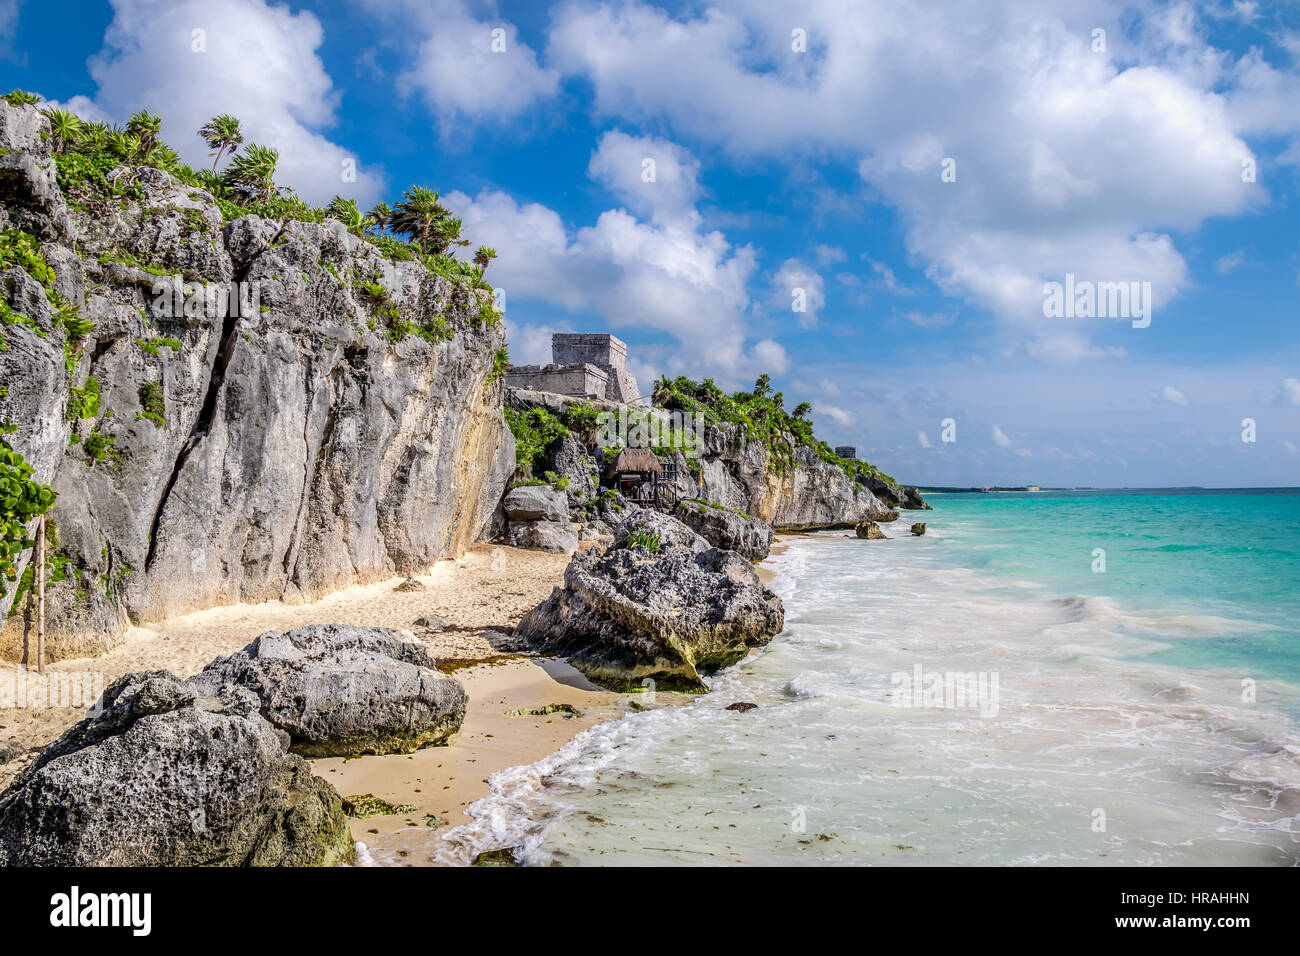 El Castillo and Caribbean beach - Mayan Ruins of Tulum, Mexico - Stock Image